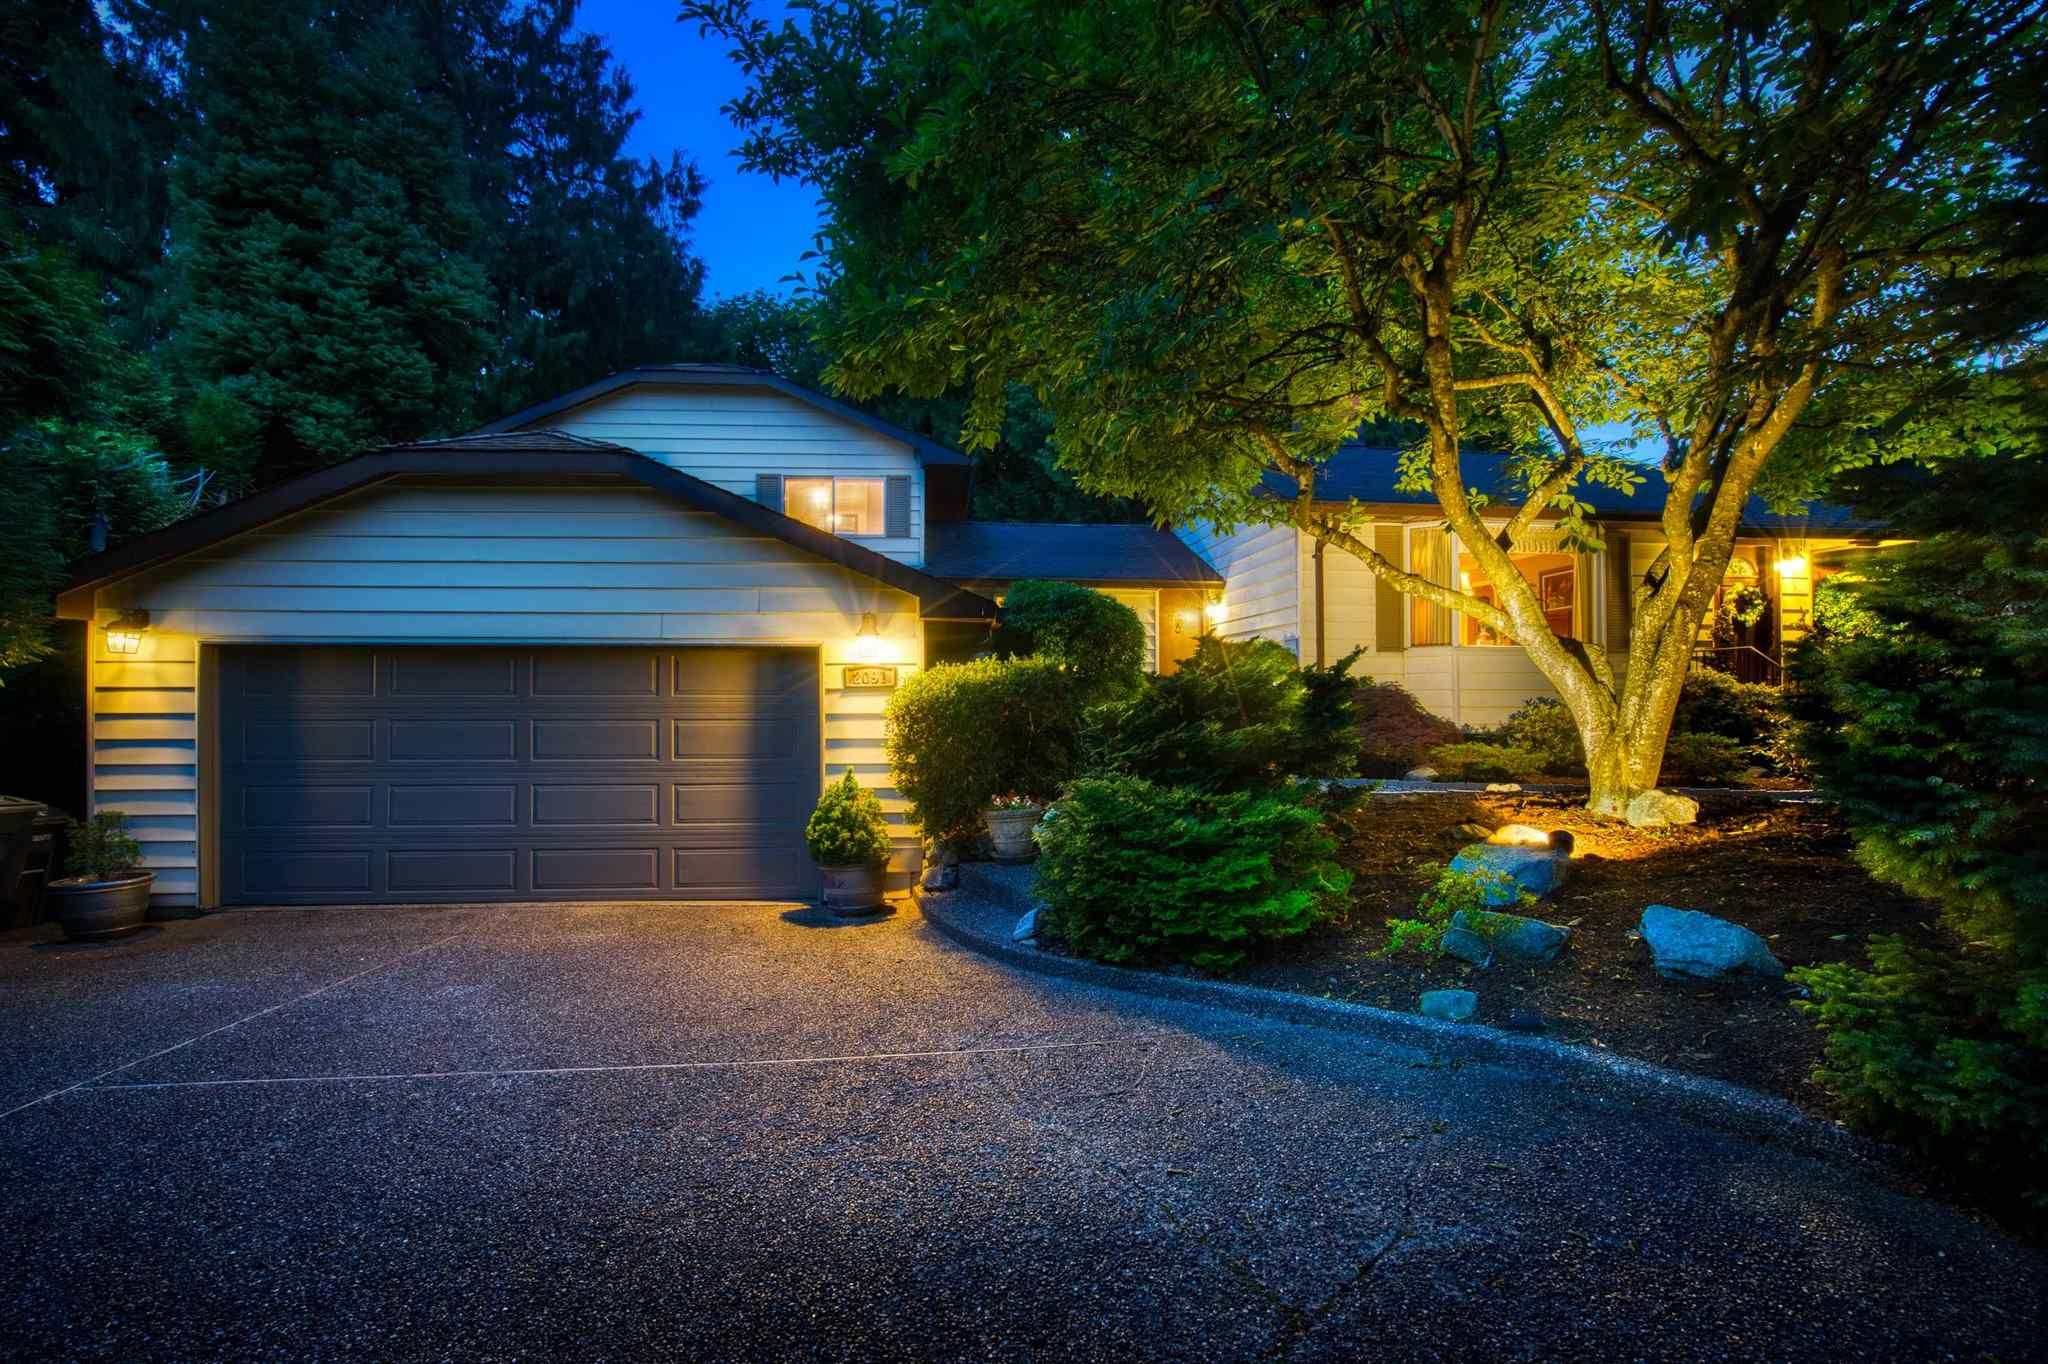 Main Photo: 2091 SPERLING Avenue in Burnaby: Parkcrest House for sale (Burnaby North)  : MLS®# R2595205